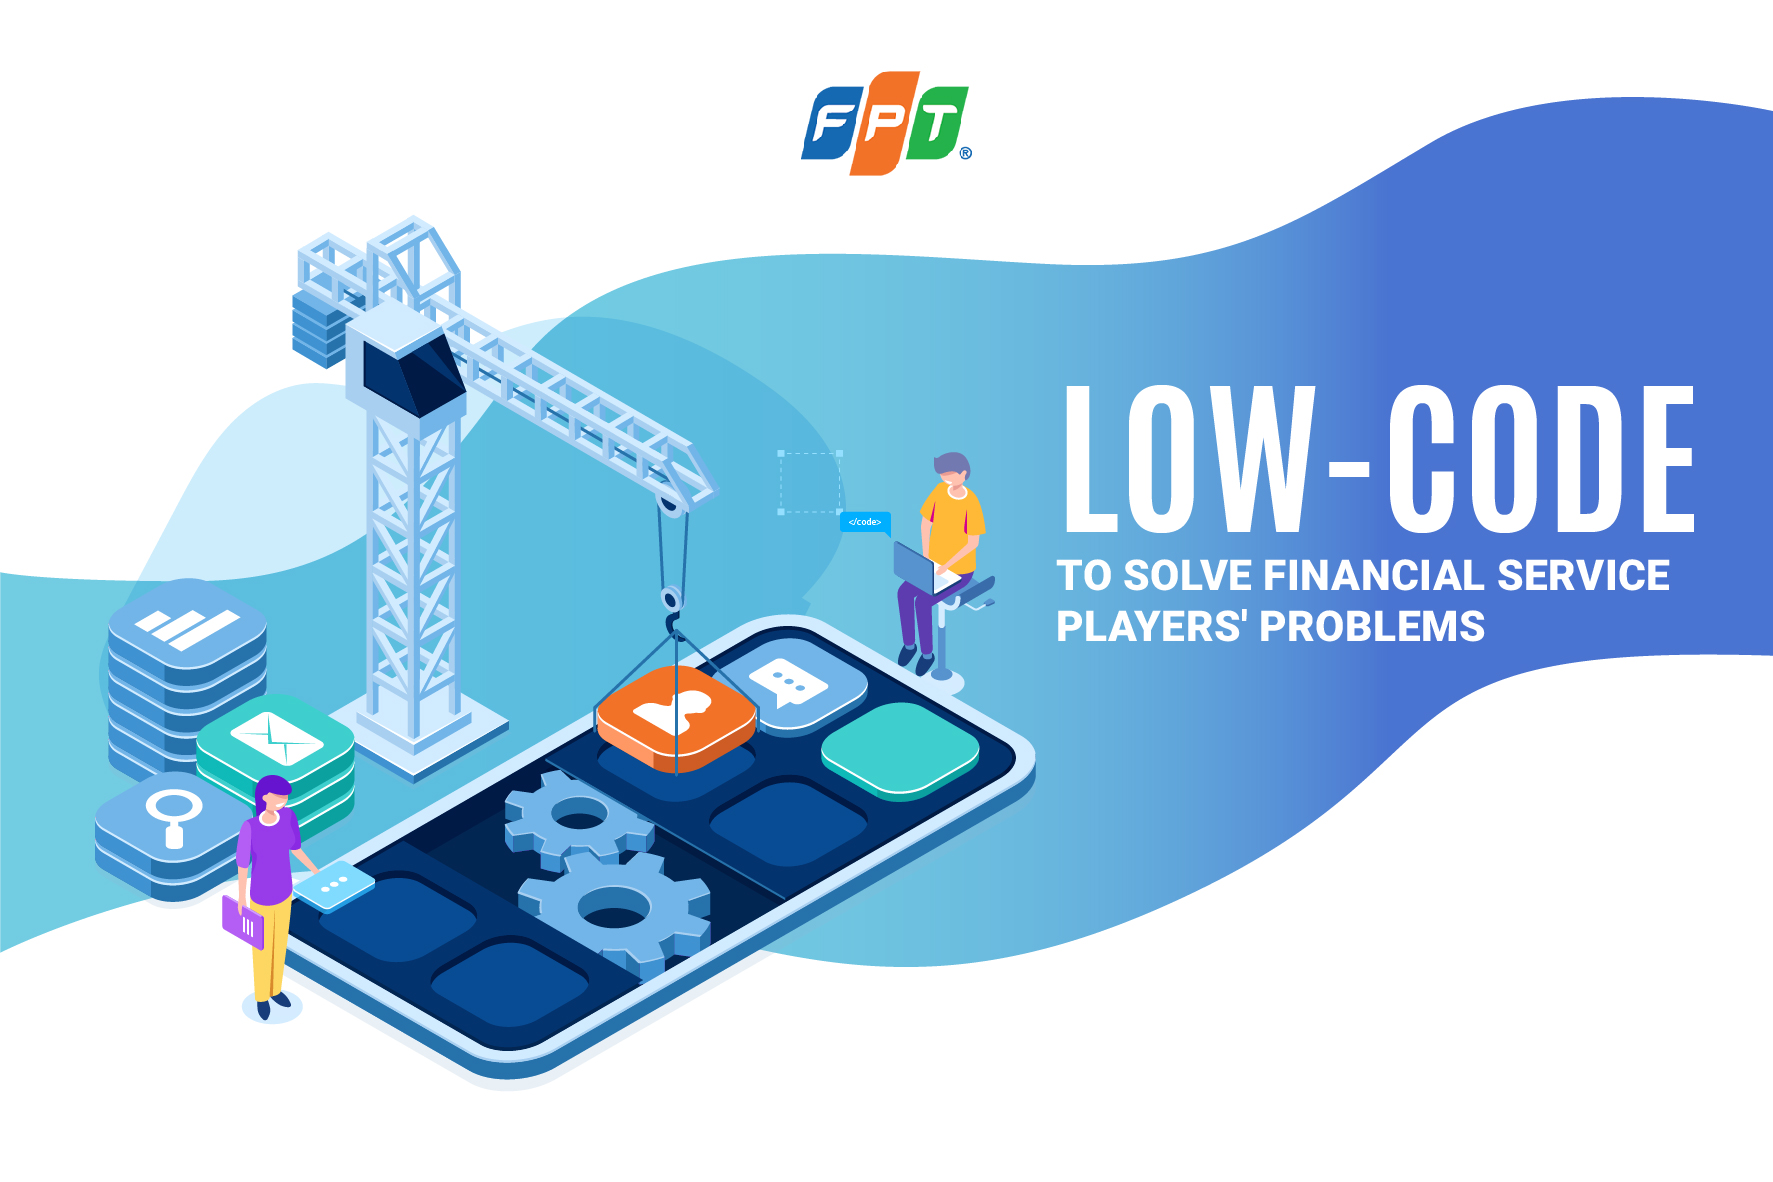 Low-code to Solve Financial Service Players' Problems